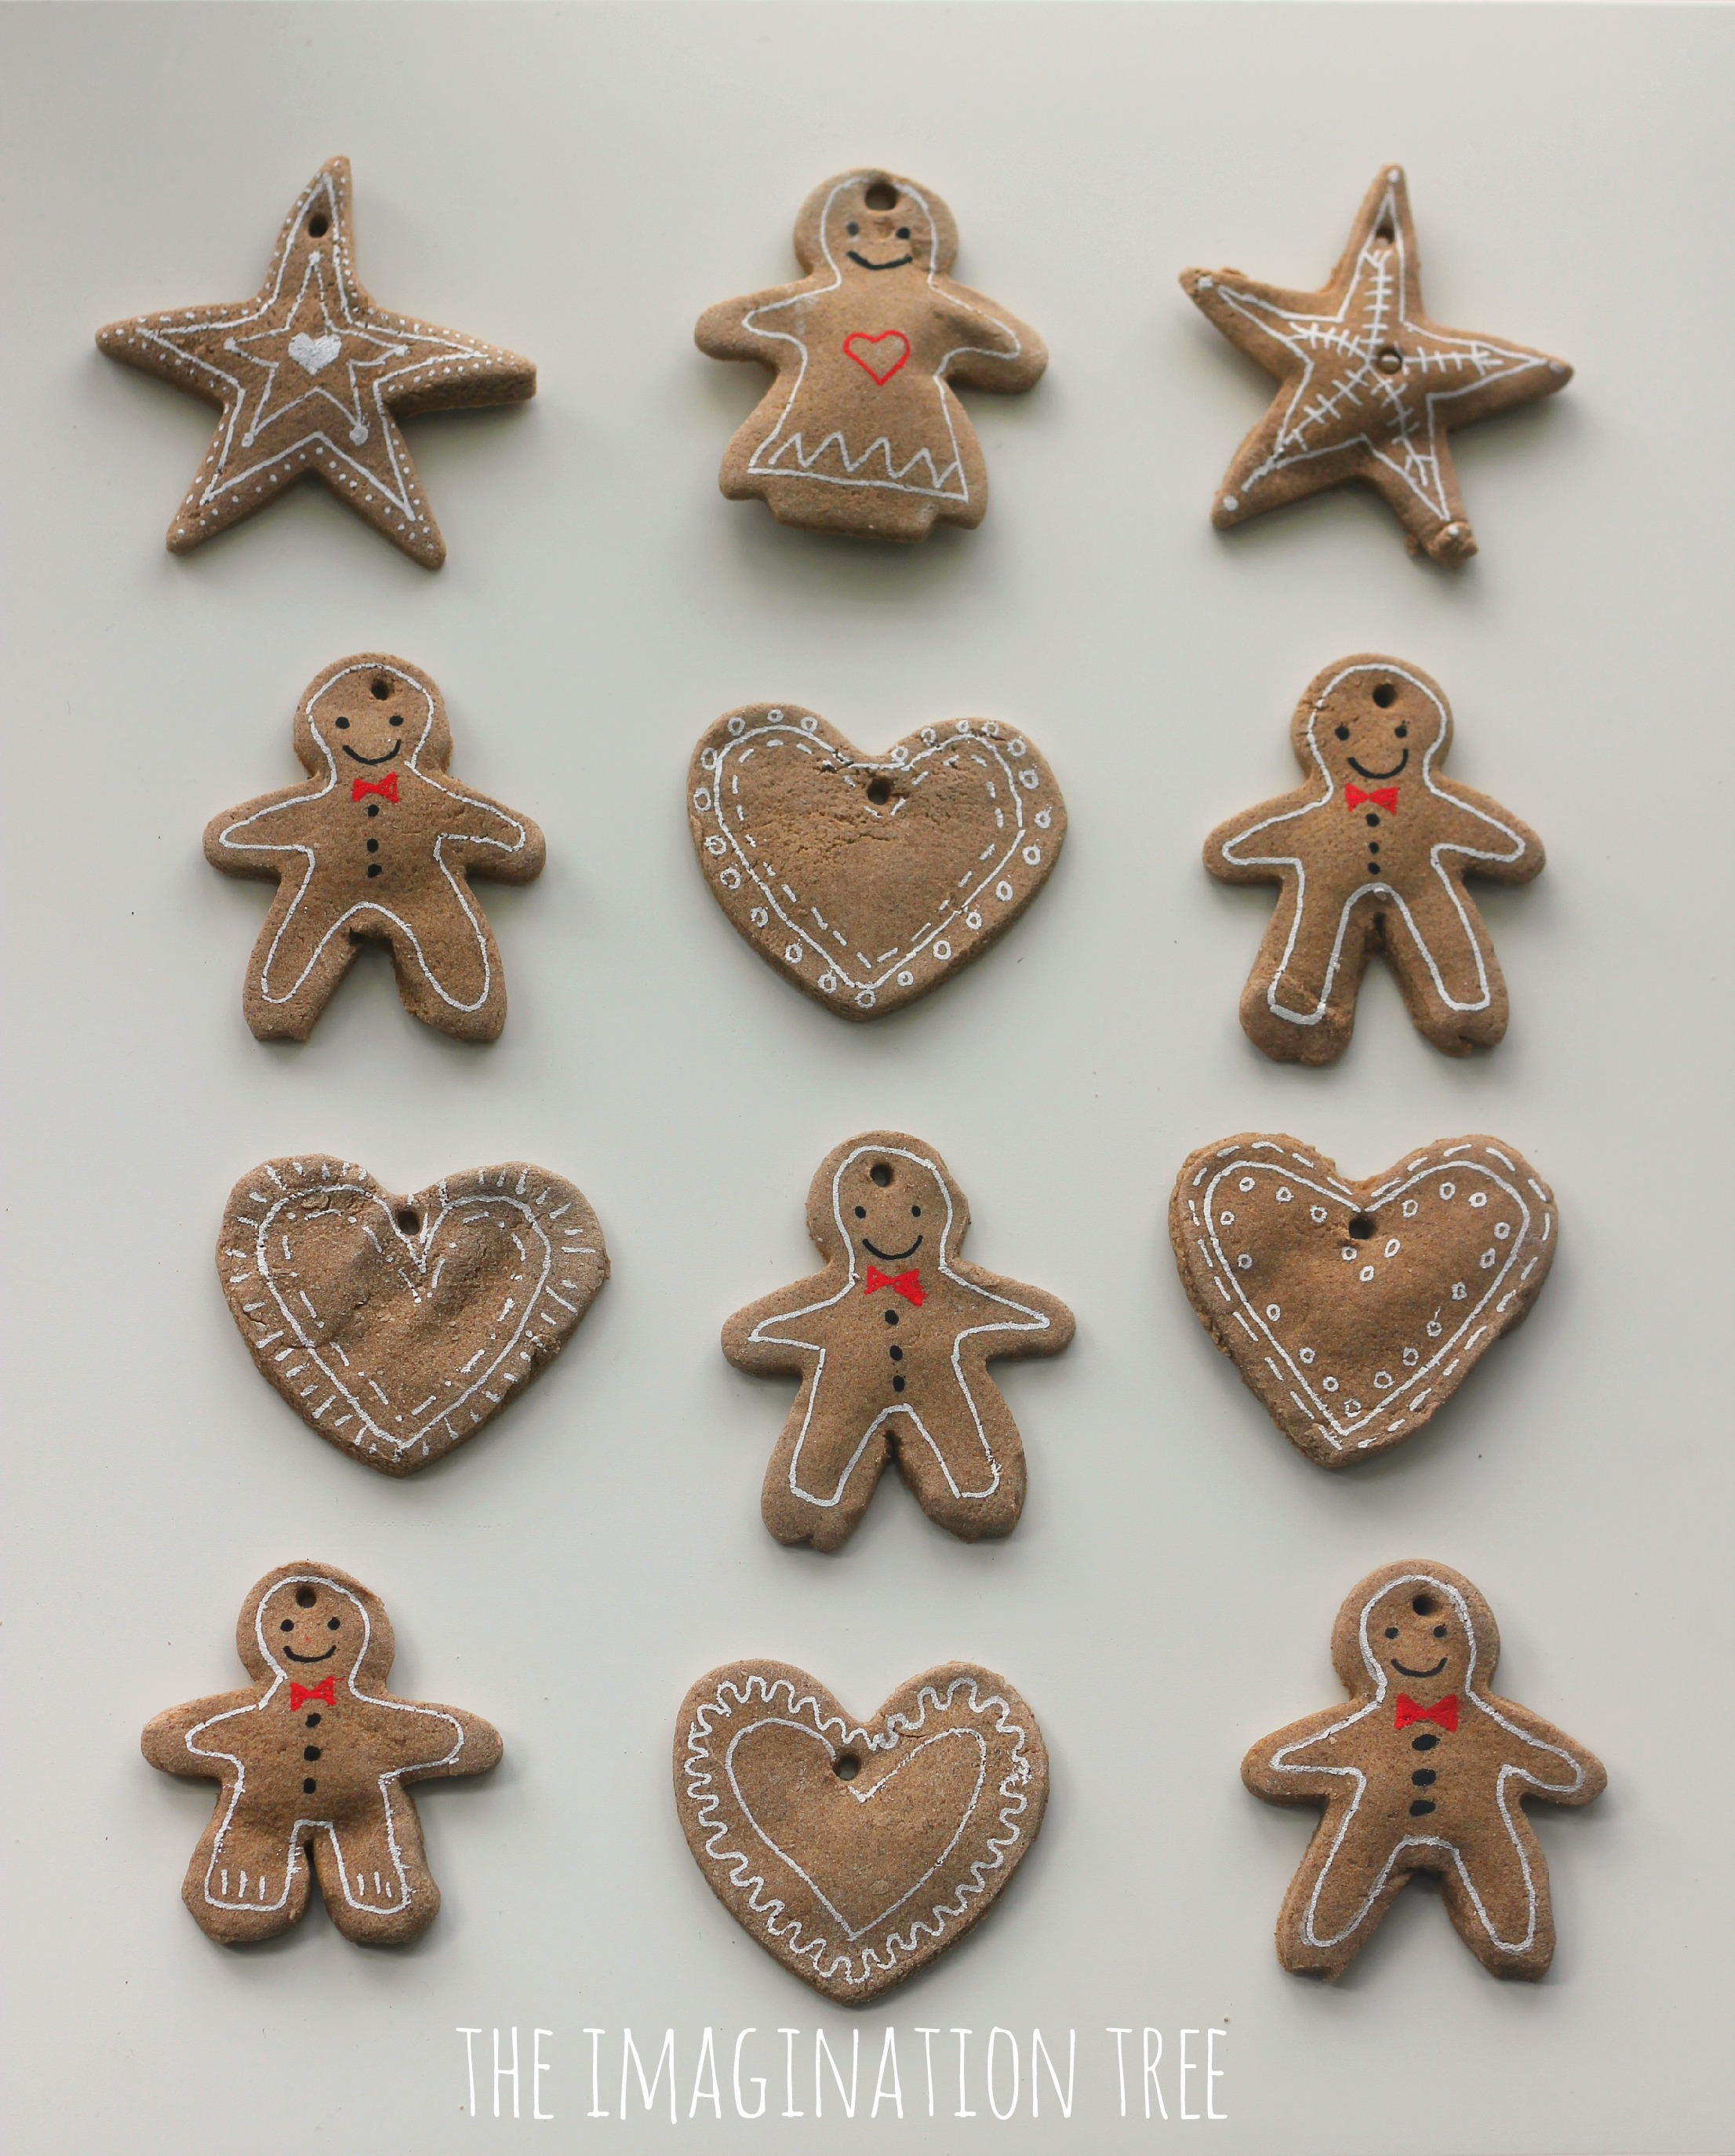 gingerbread clay ornaments made using a simple diy recipe